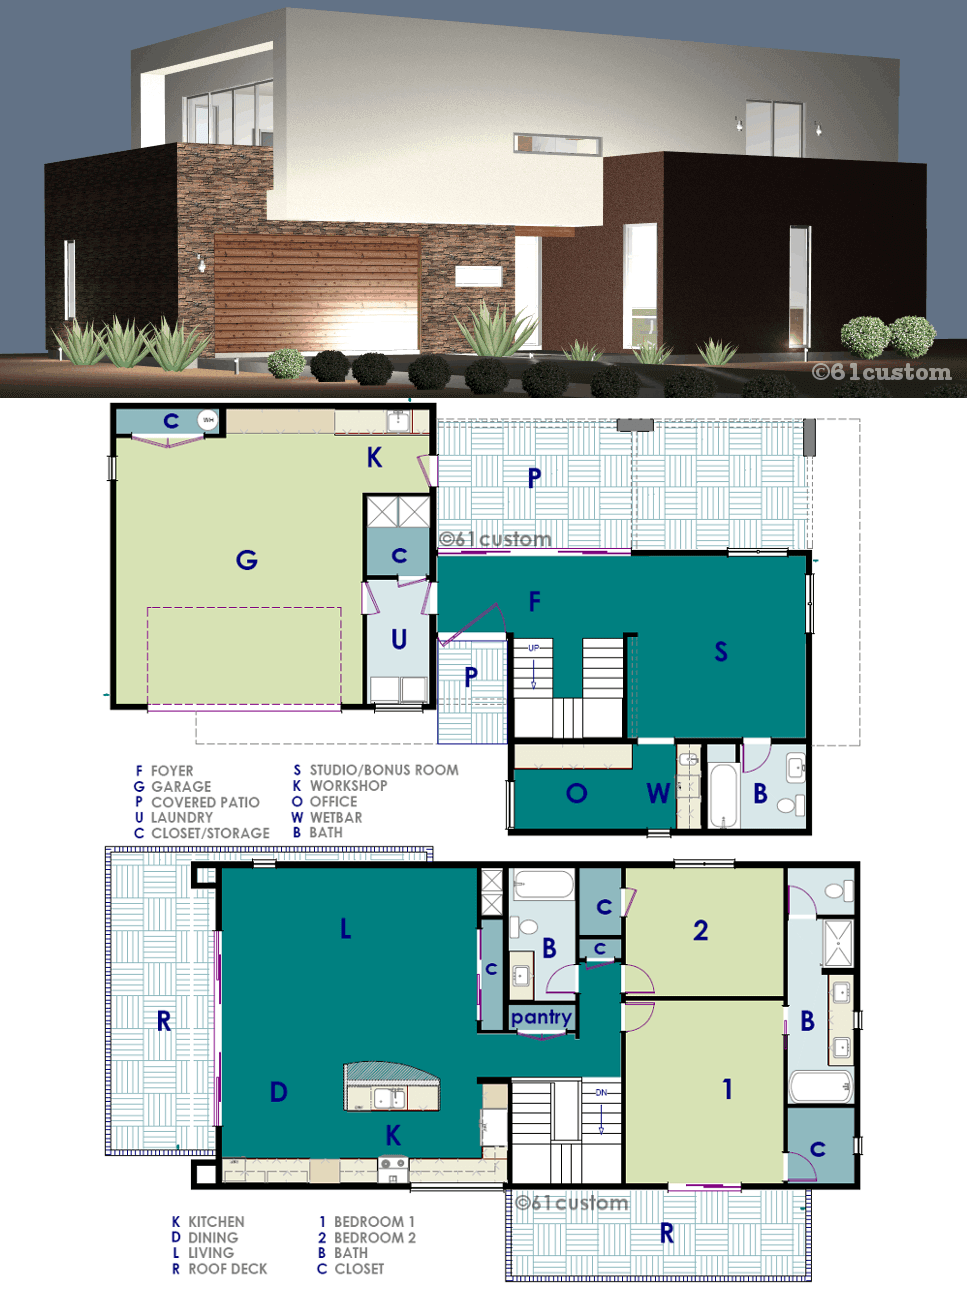 Ultra modern live work house plan 61custom for Small custom home plans